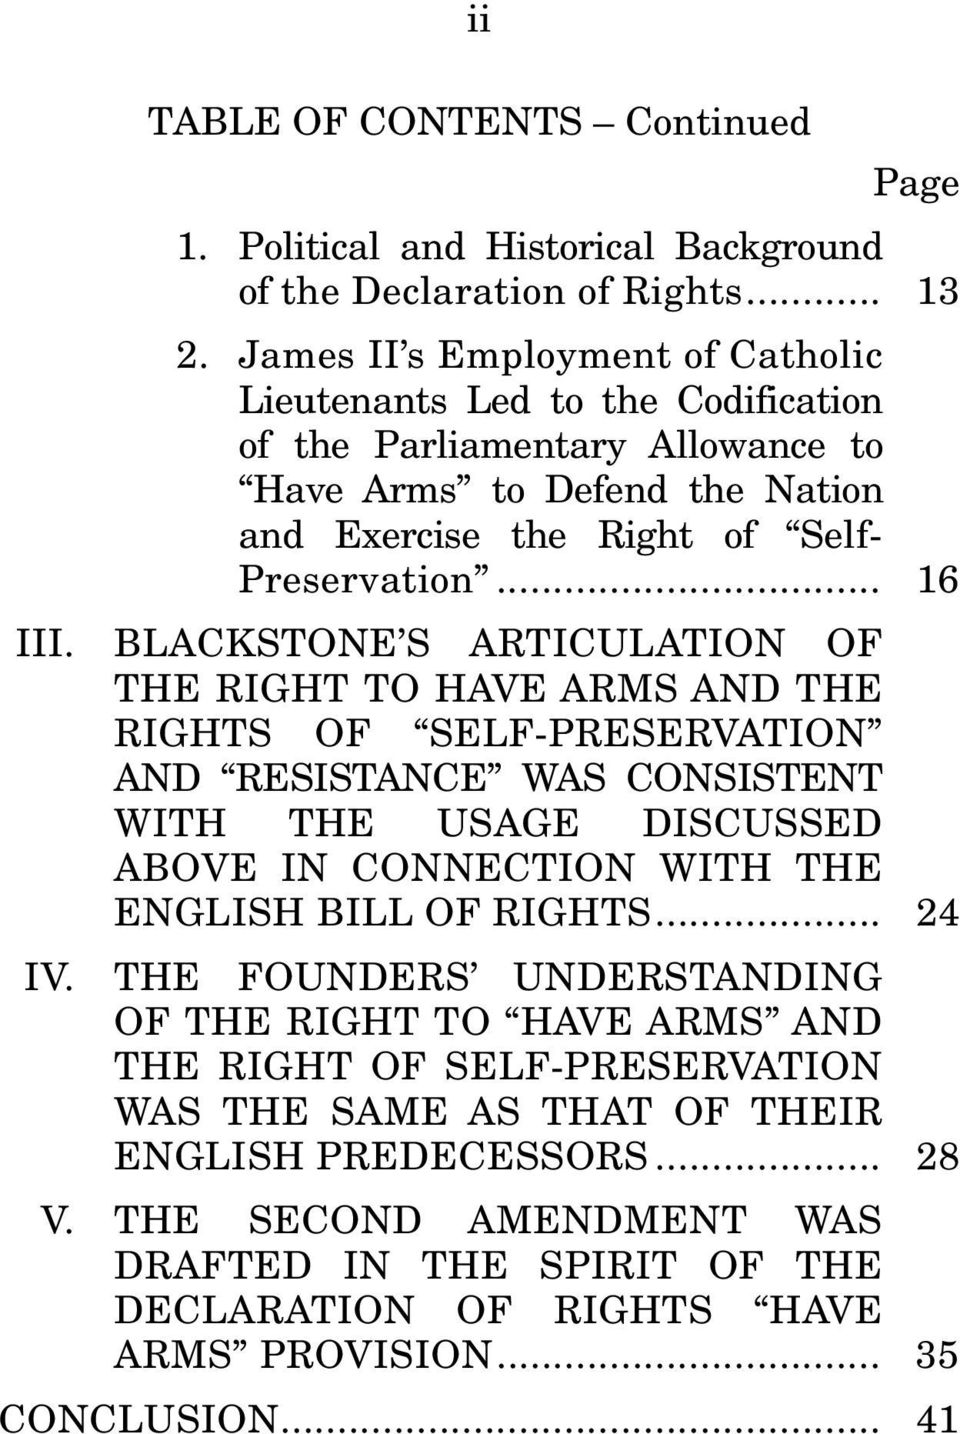 BLACKSTONE S ARTICULATION OF THE RIGHT TO HAVE ARMS AND THE RIGHTS OF SELF-PRESERVATION AND RESISTANCE WAS CONSISTENT WITH THE USAGE DISCUSSED ABOVE IN CONNECTION WITH THE ENGLISH BILL OF